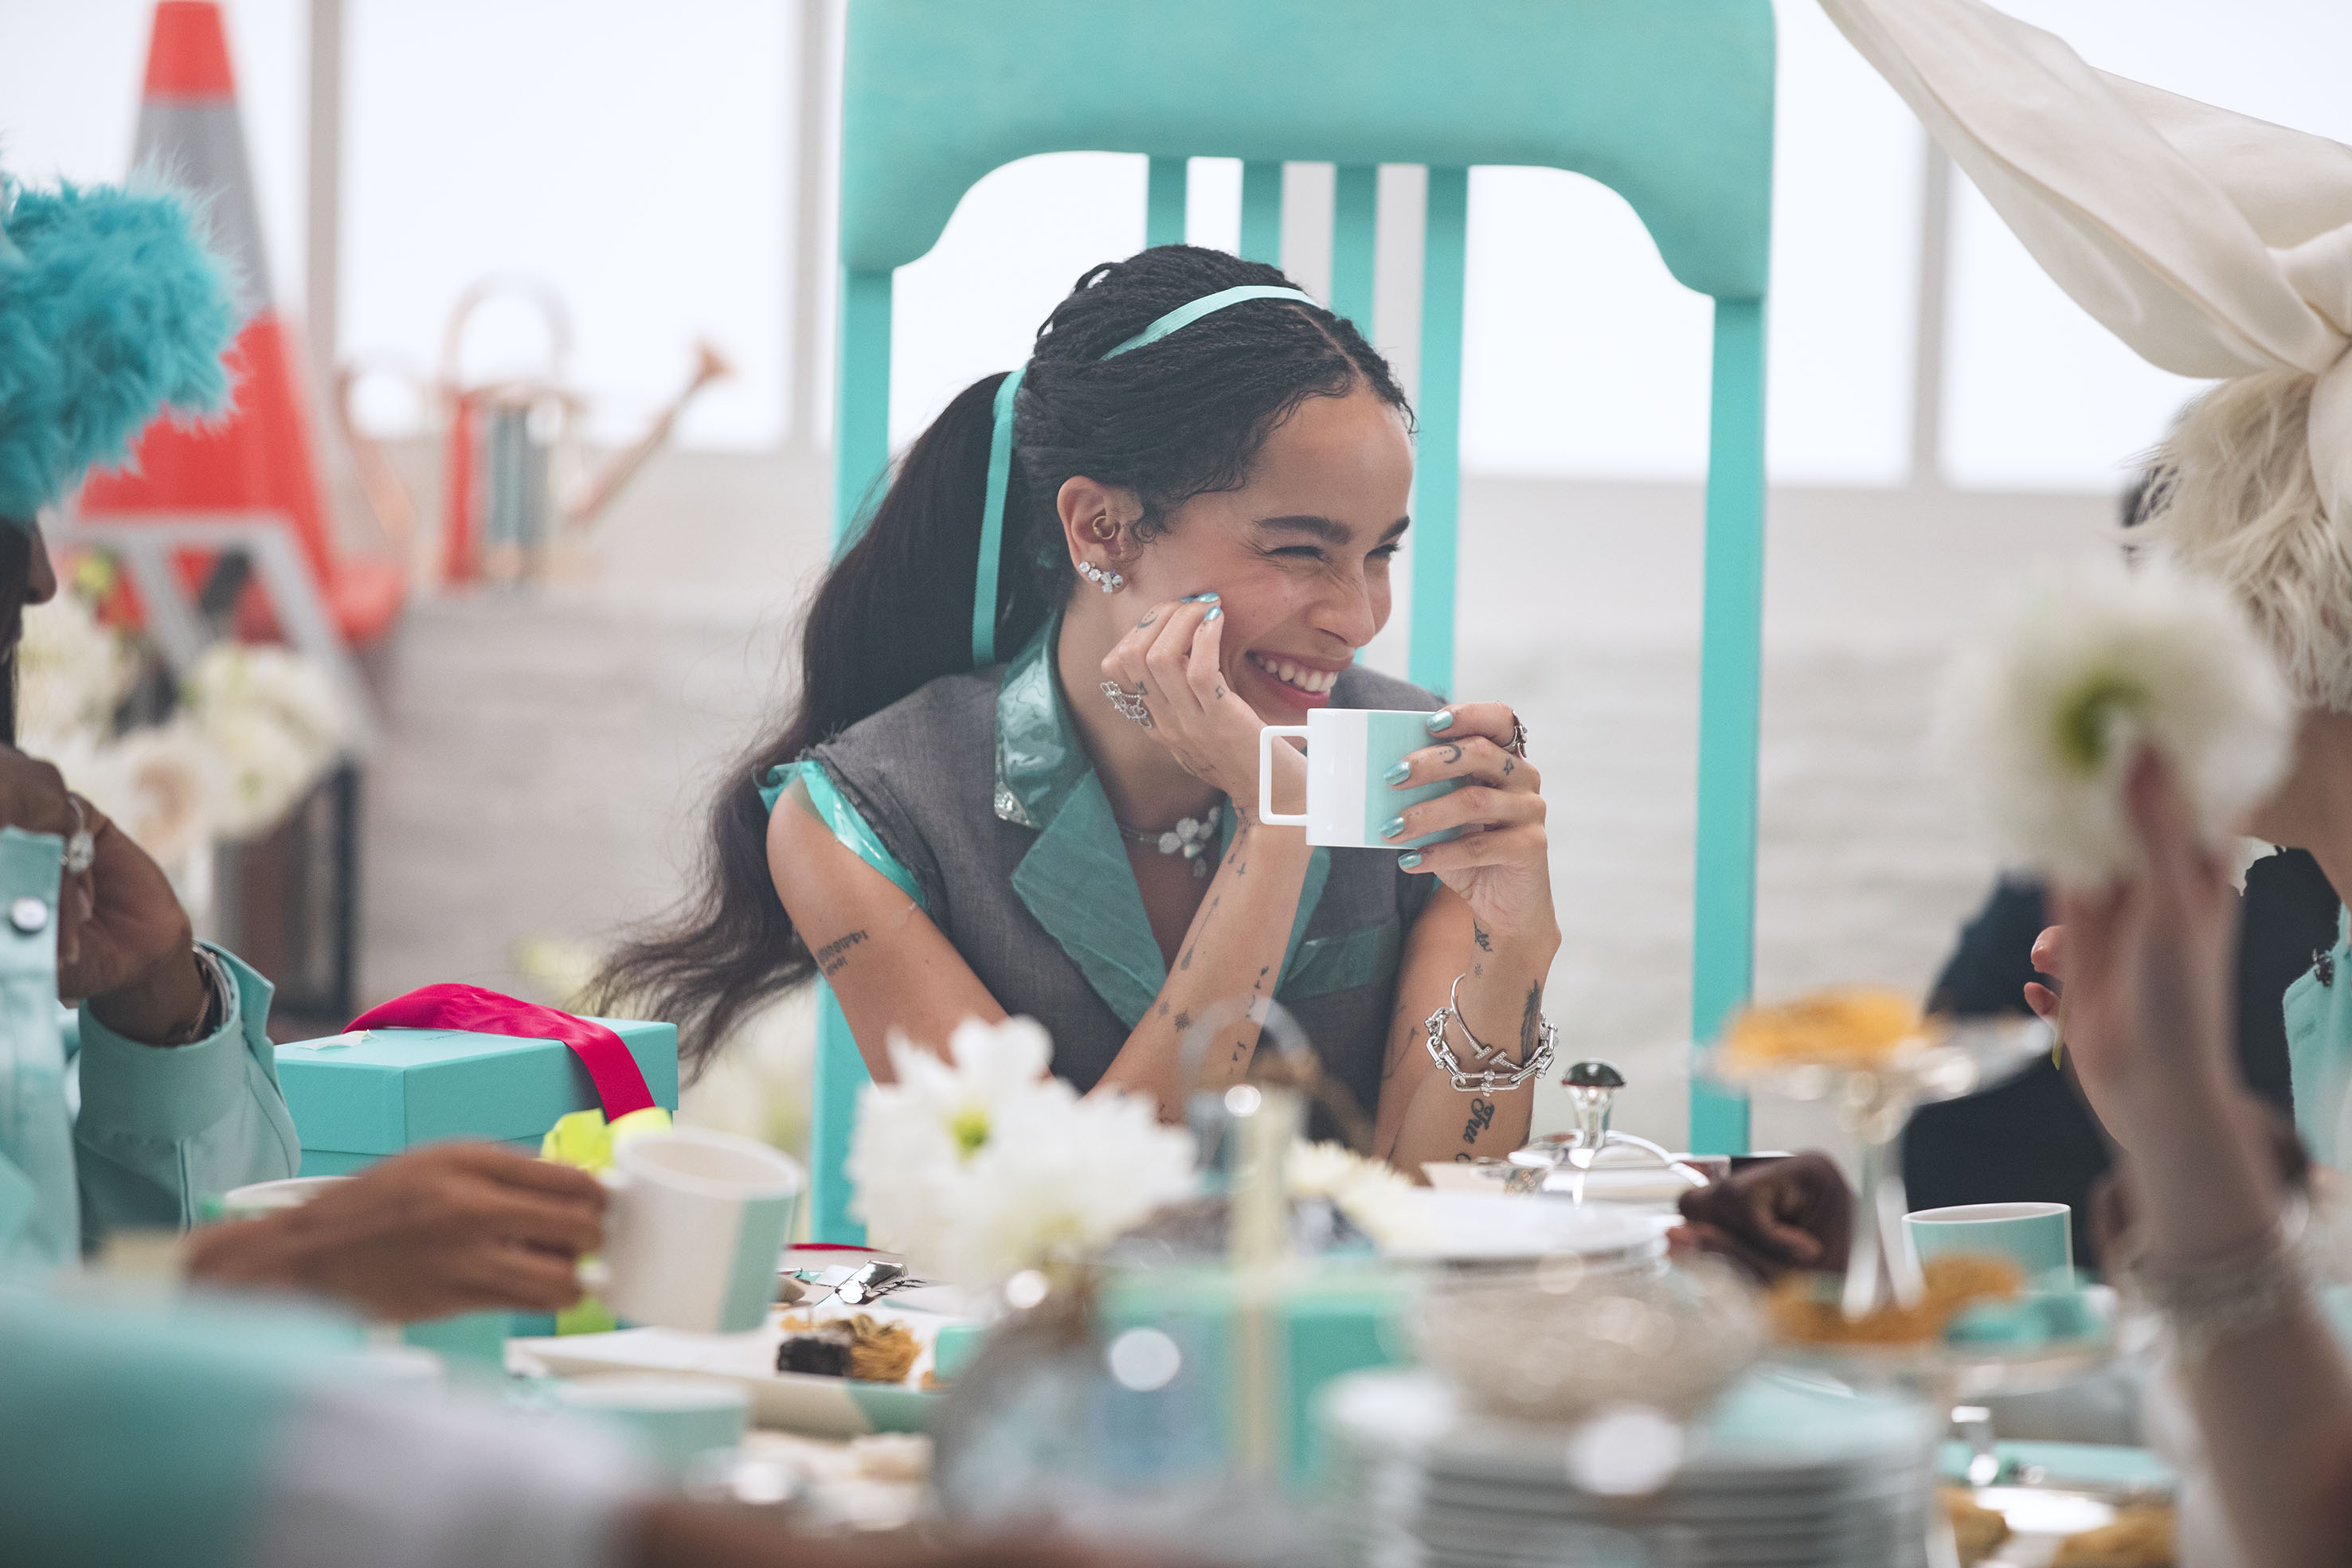 Tiffany & Co campagna Natale 2018: il video Believe in Dreams con Zoë Kravitz